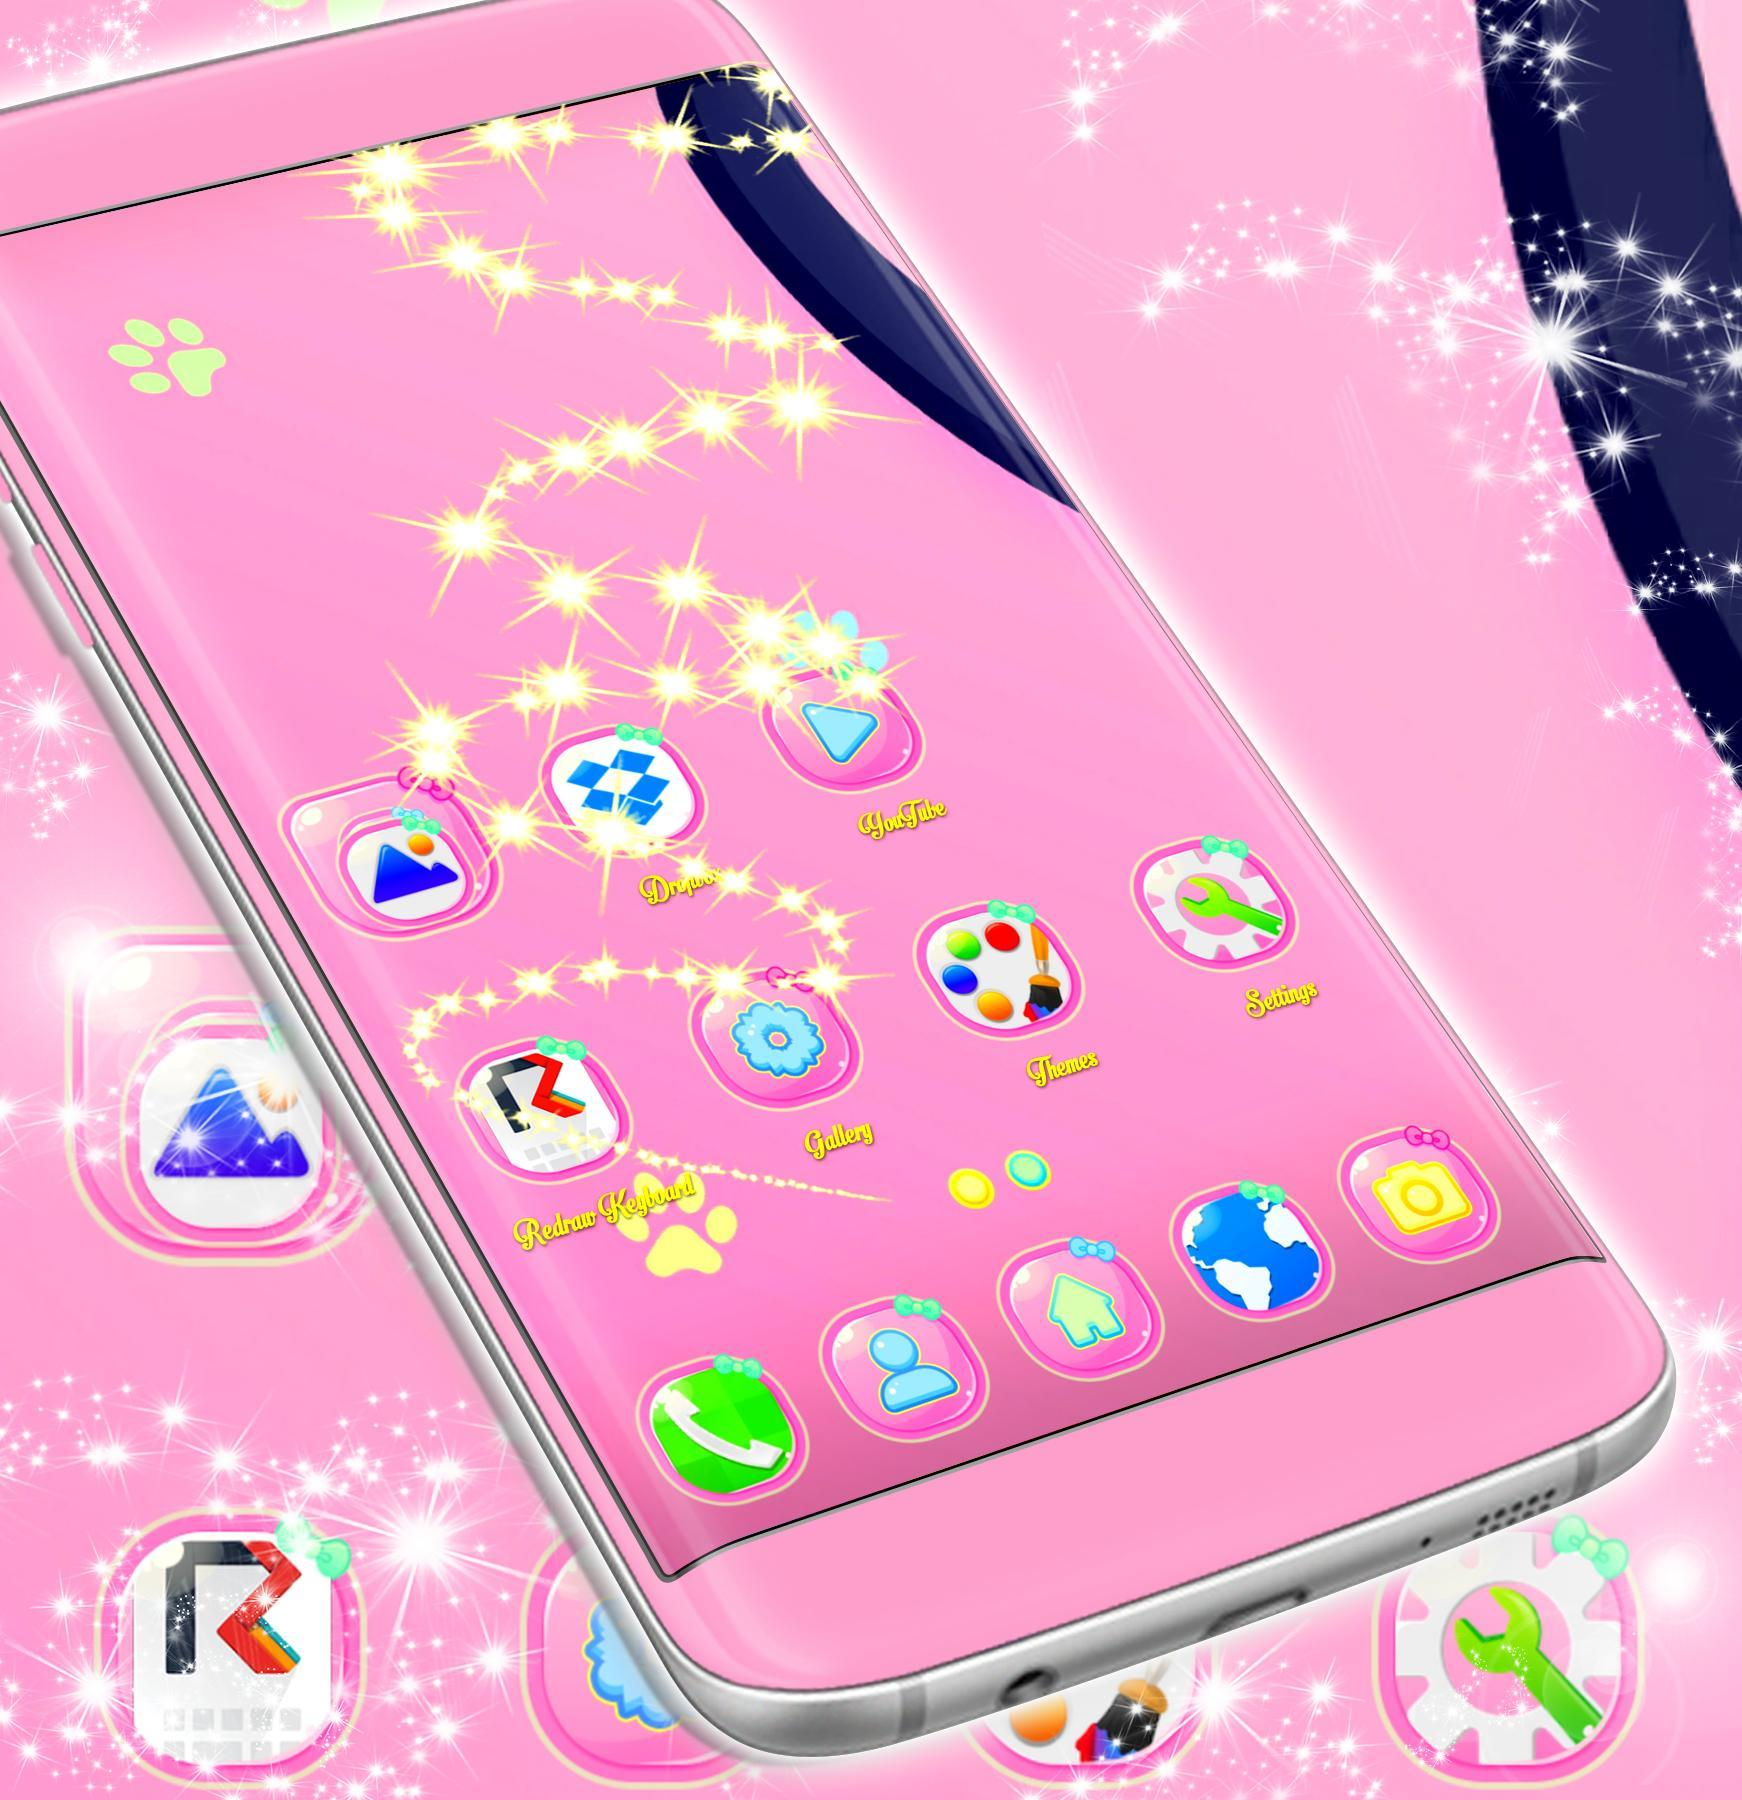 Cartoon Launcher New 2018 For Android Apk Download